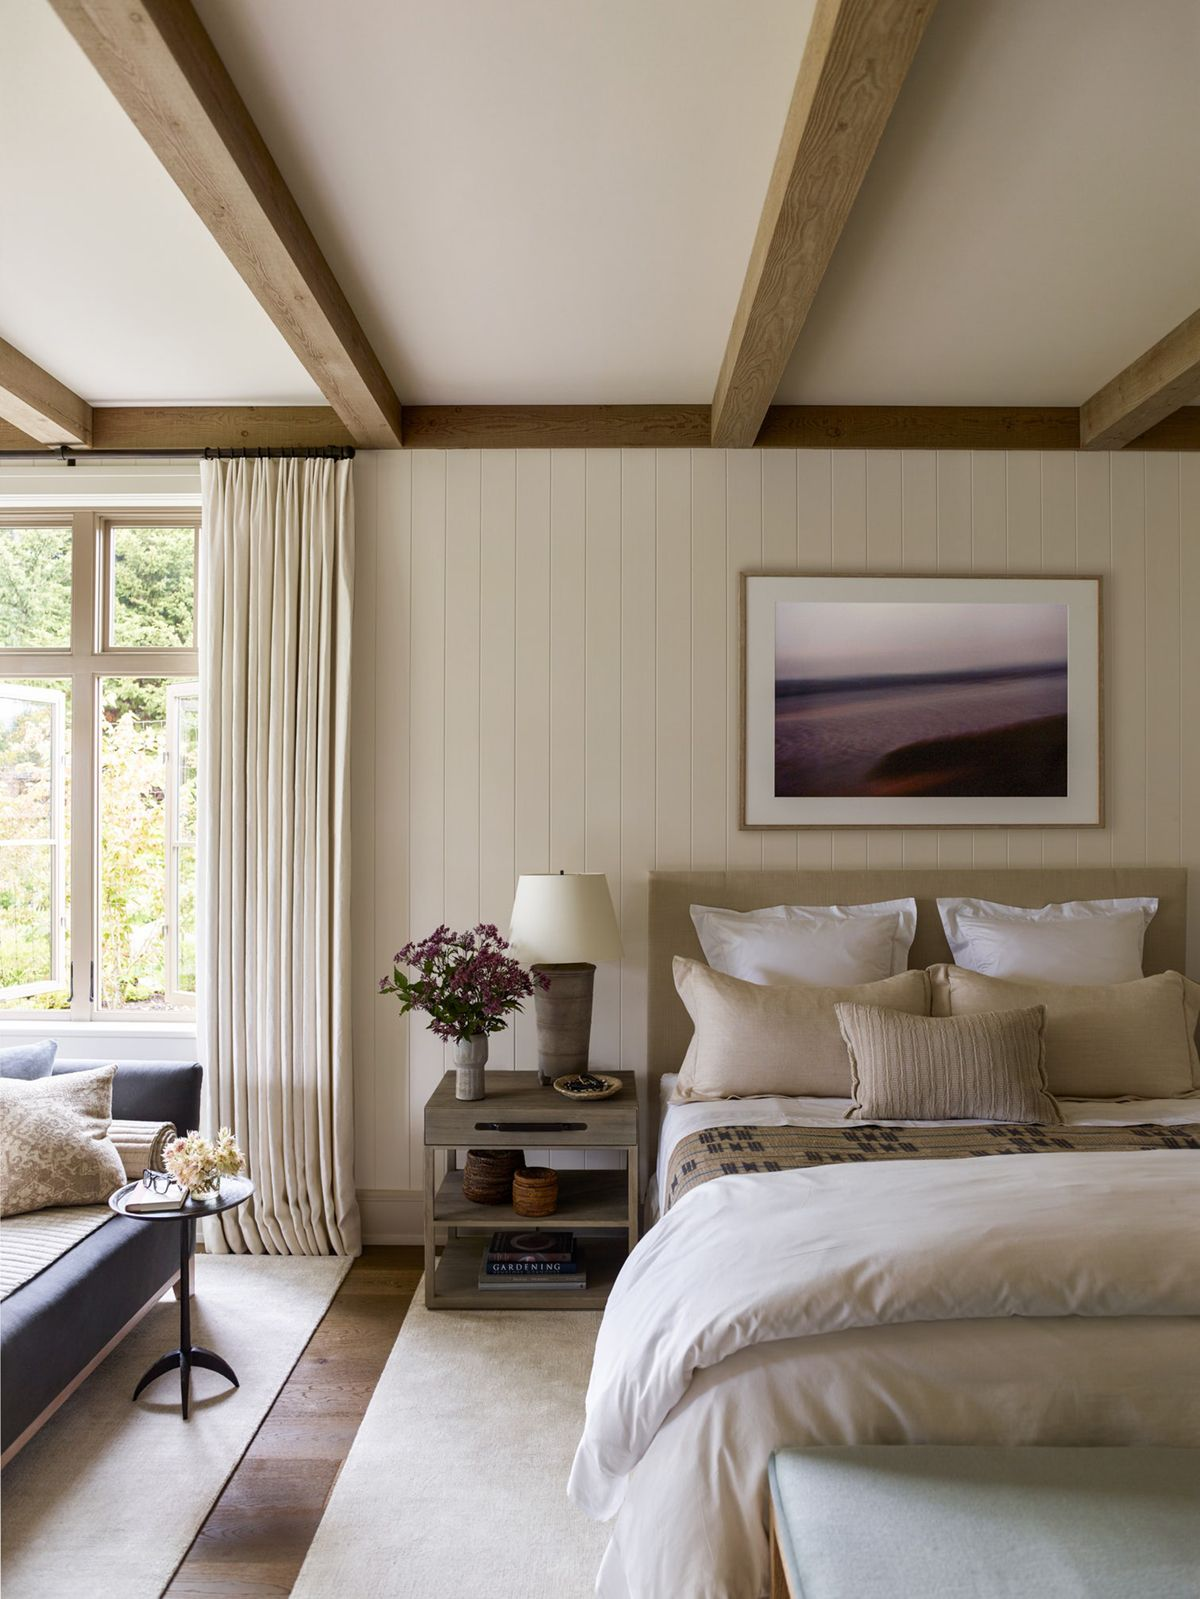 House Tour Tradition Meets Pacific Northwest In This Island Home Modern Master Bedroom Decor Modern Master Bedroom Master Bedrooms Decor